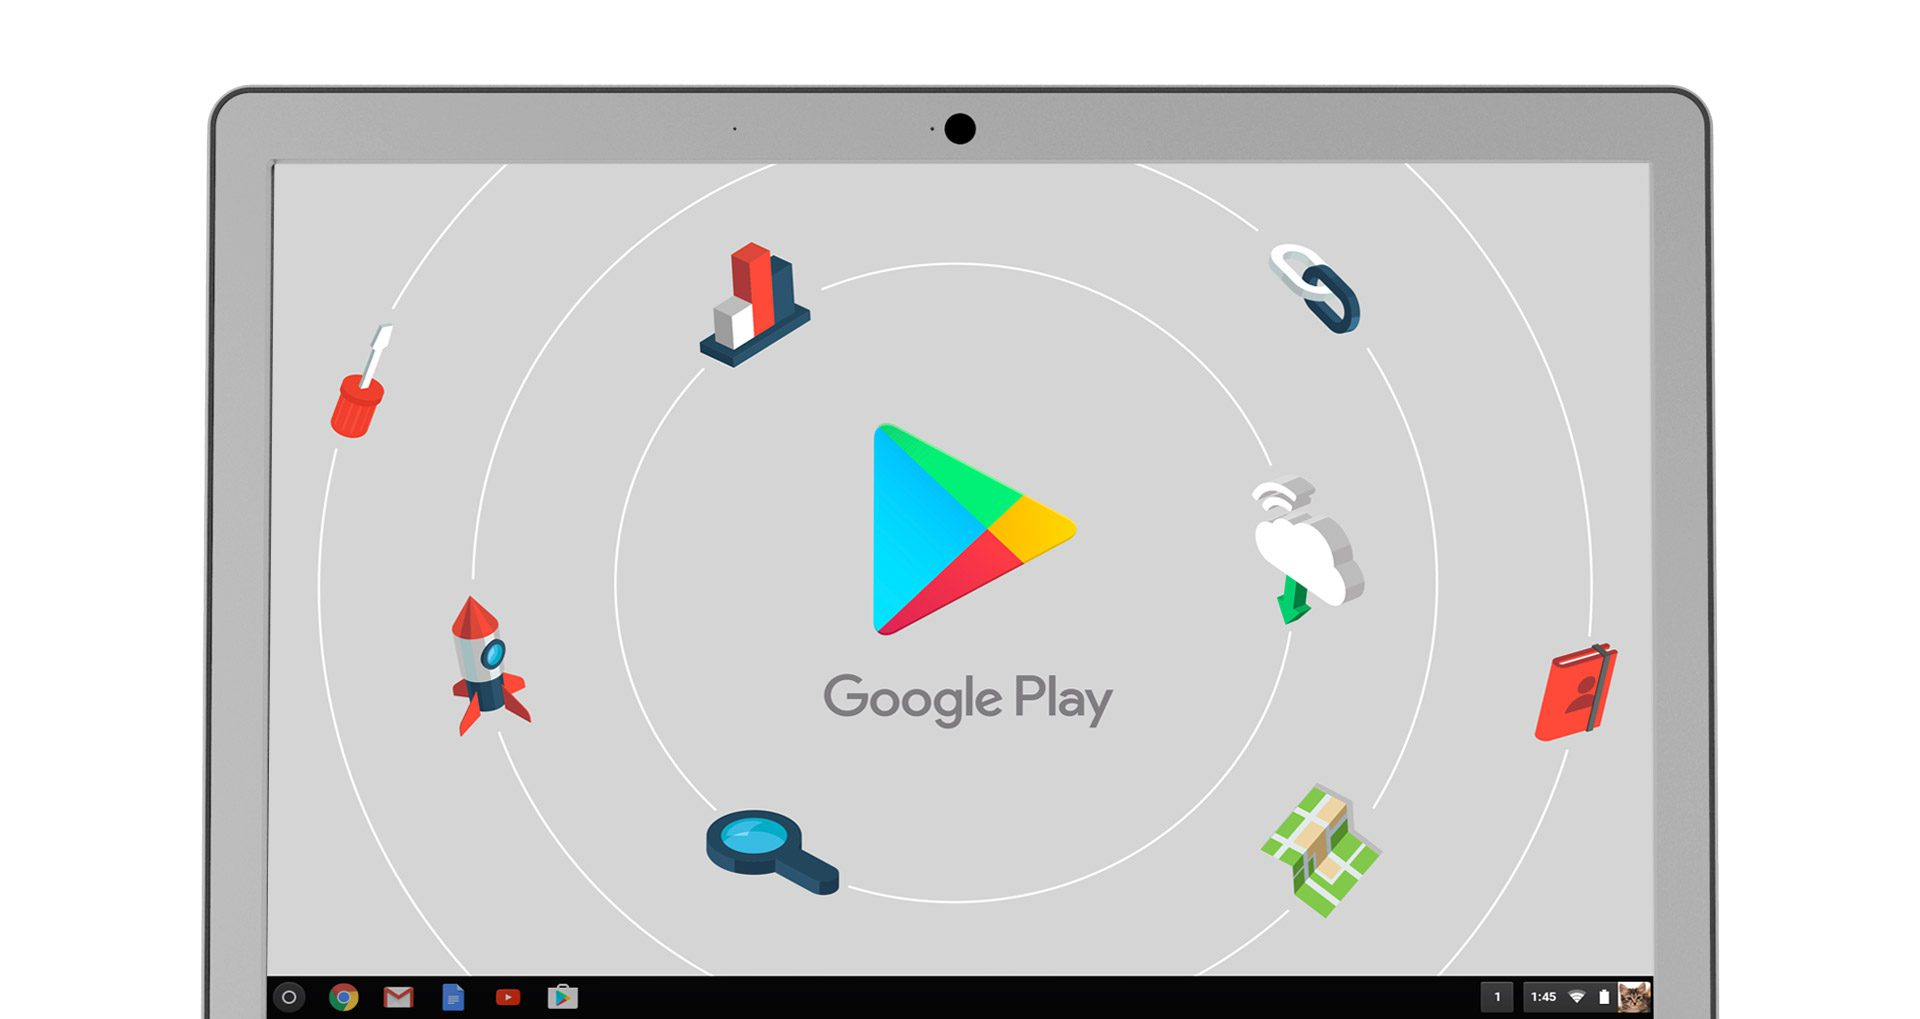 Chromebook 15 supports Google Play Store